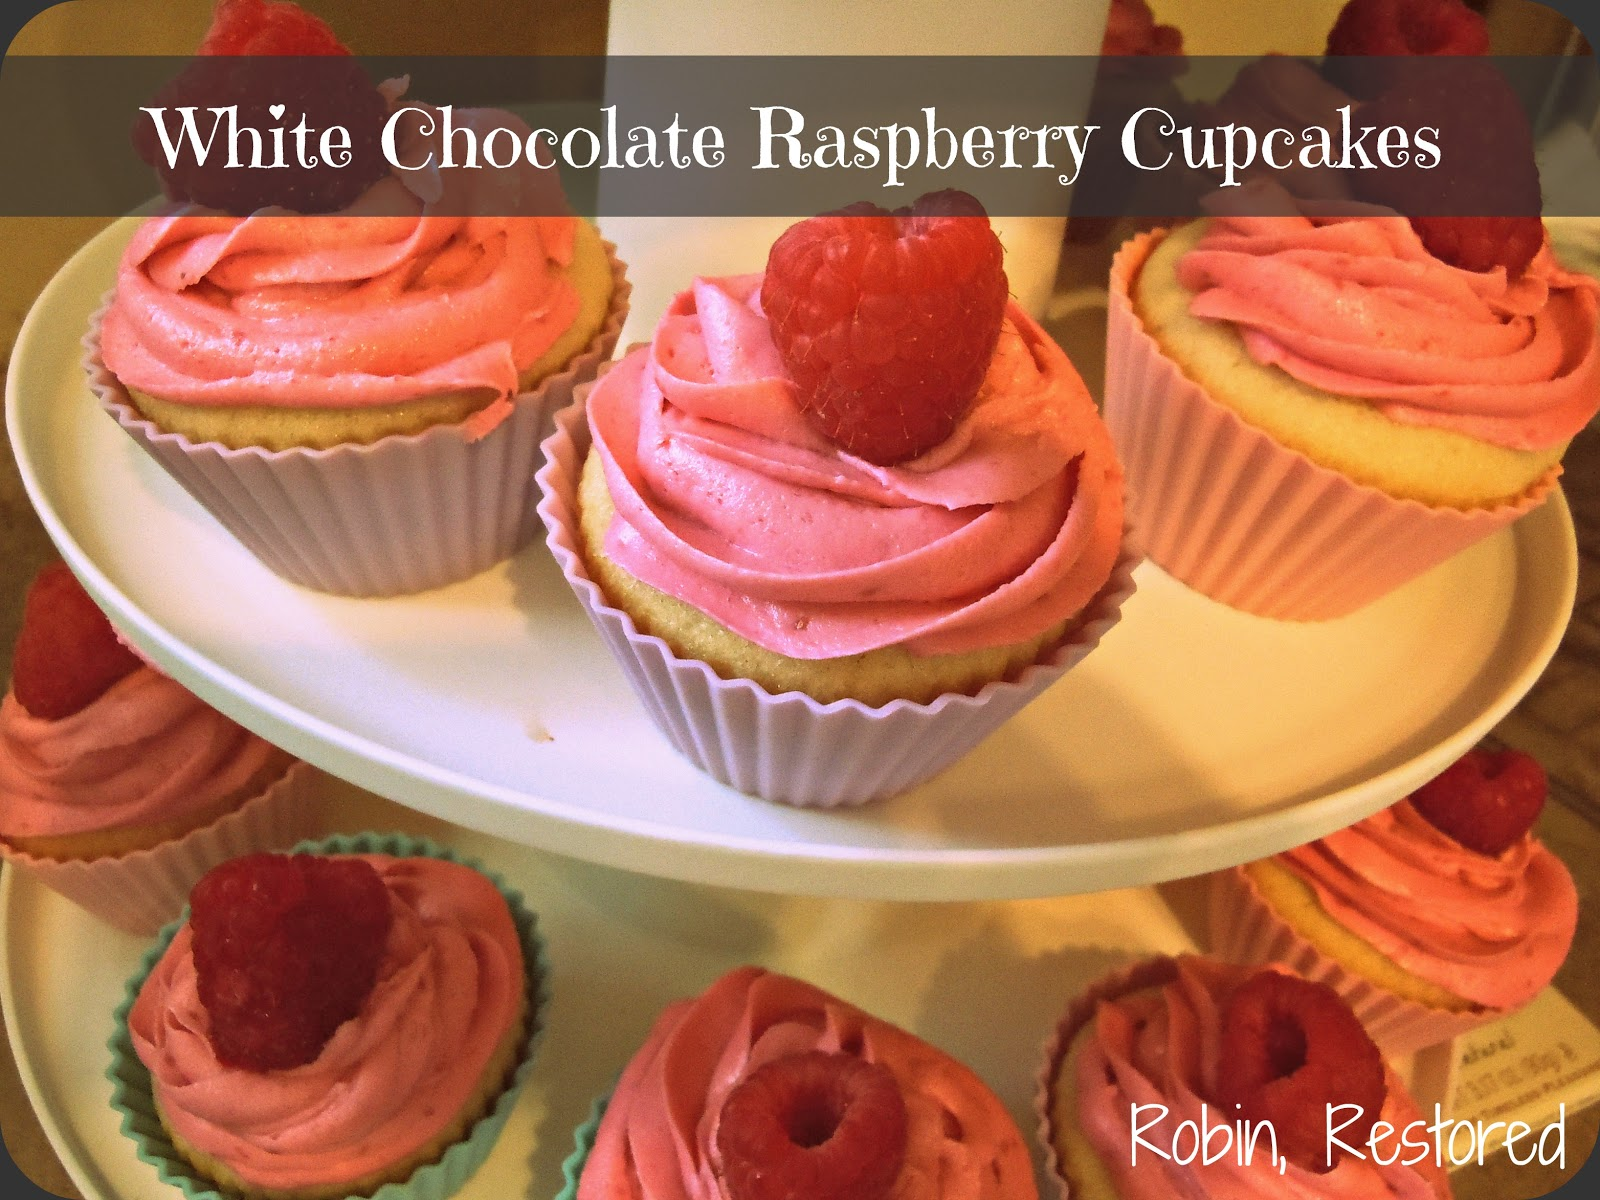 Robin, Restored: White Chocolate Raspberry Cupcakes